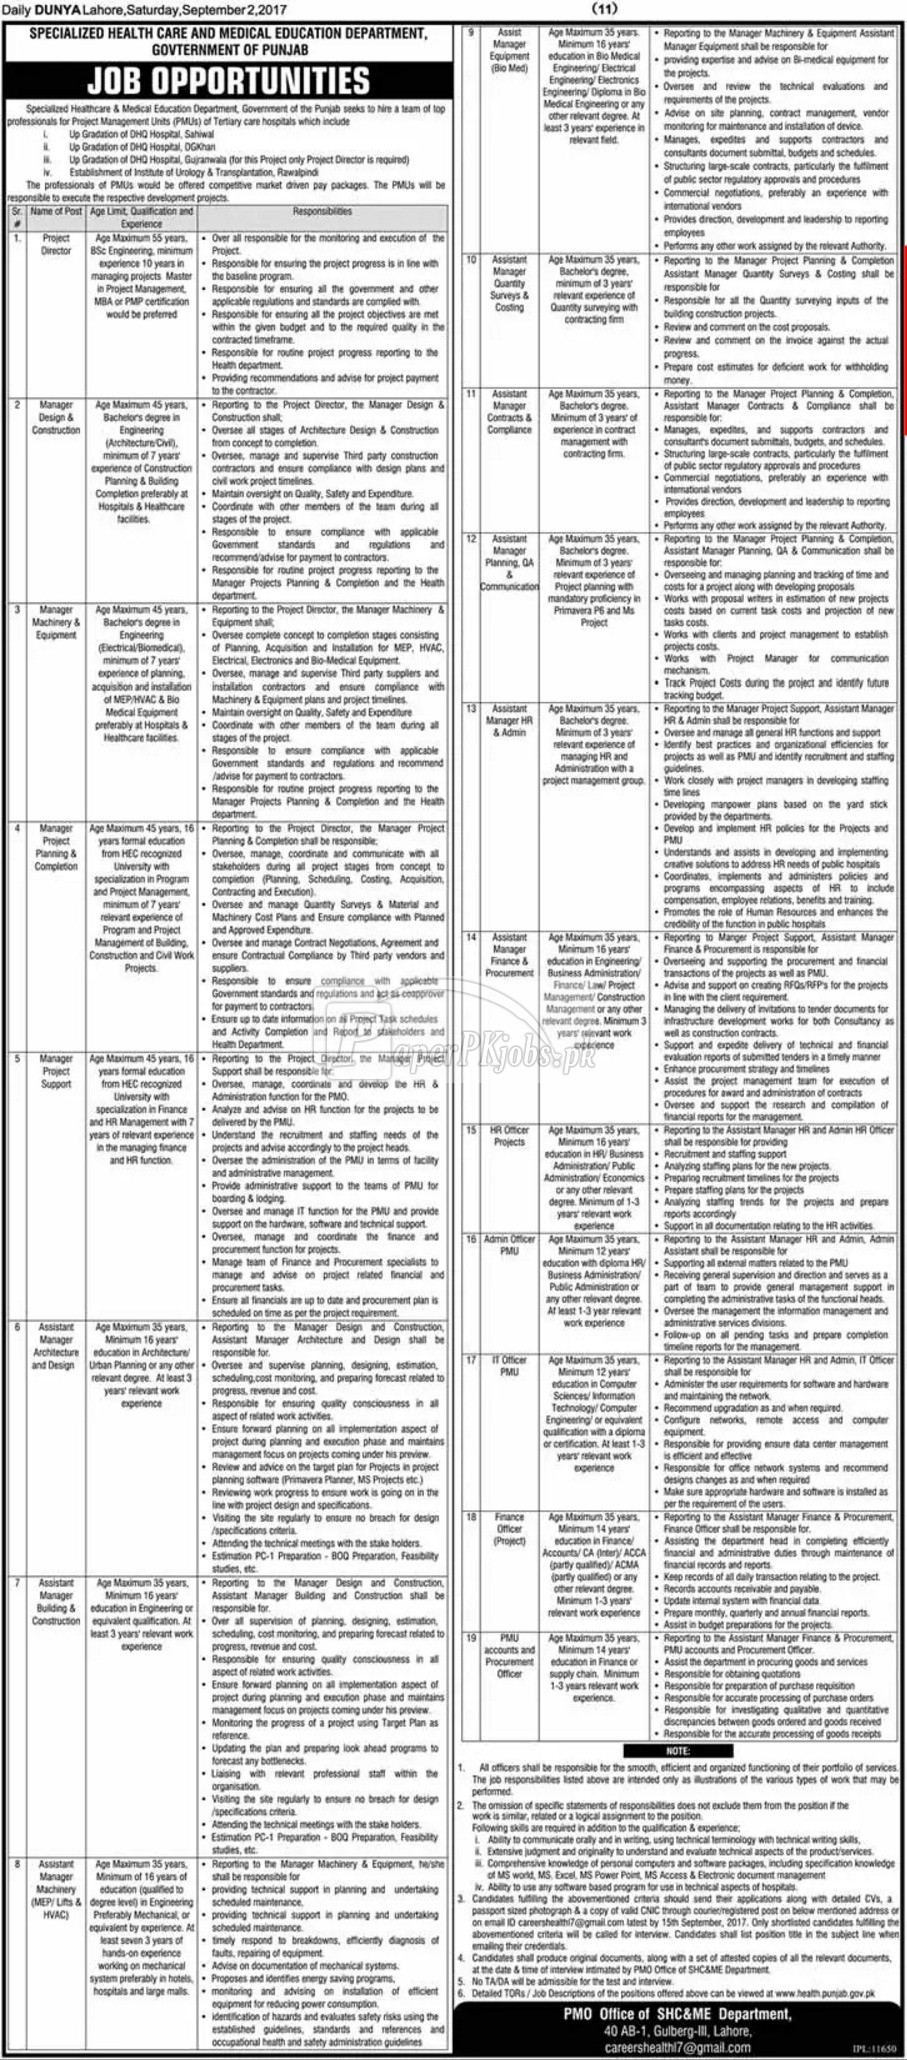 Specialized Health Care & Medical Education Education Department Punjab Jobs 2017